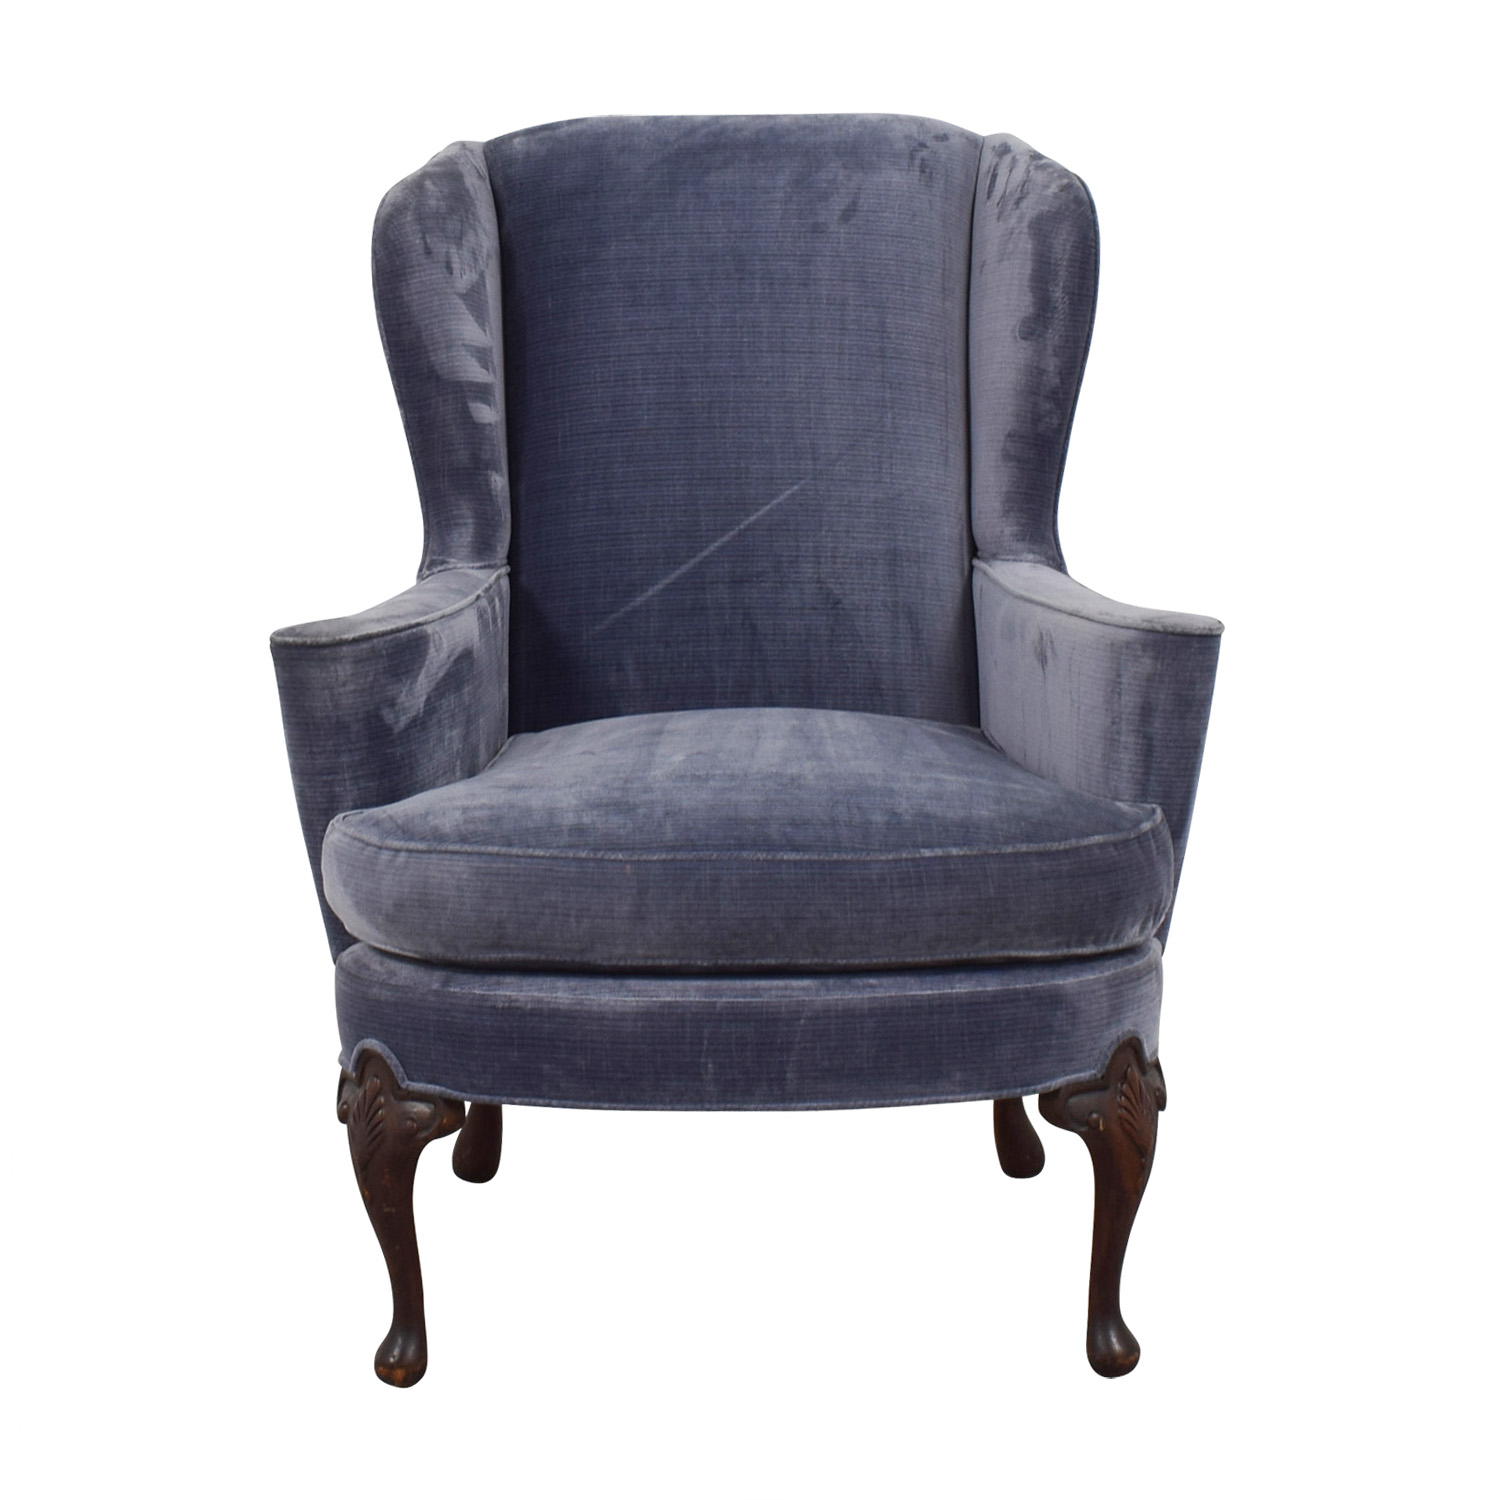 Winged Blue Velvet Accent Chair coupon